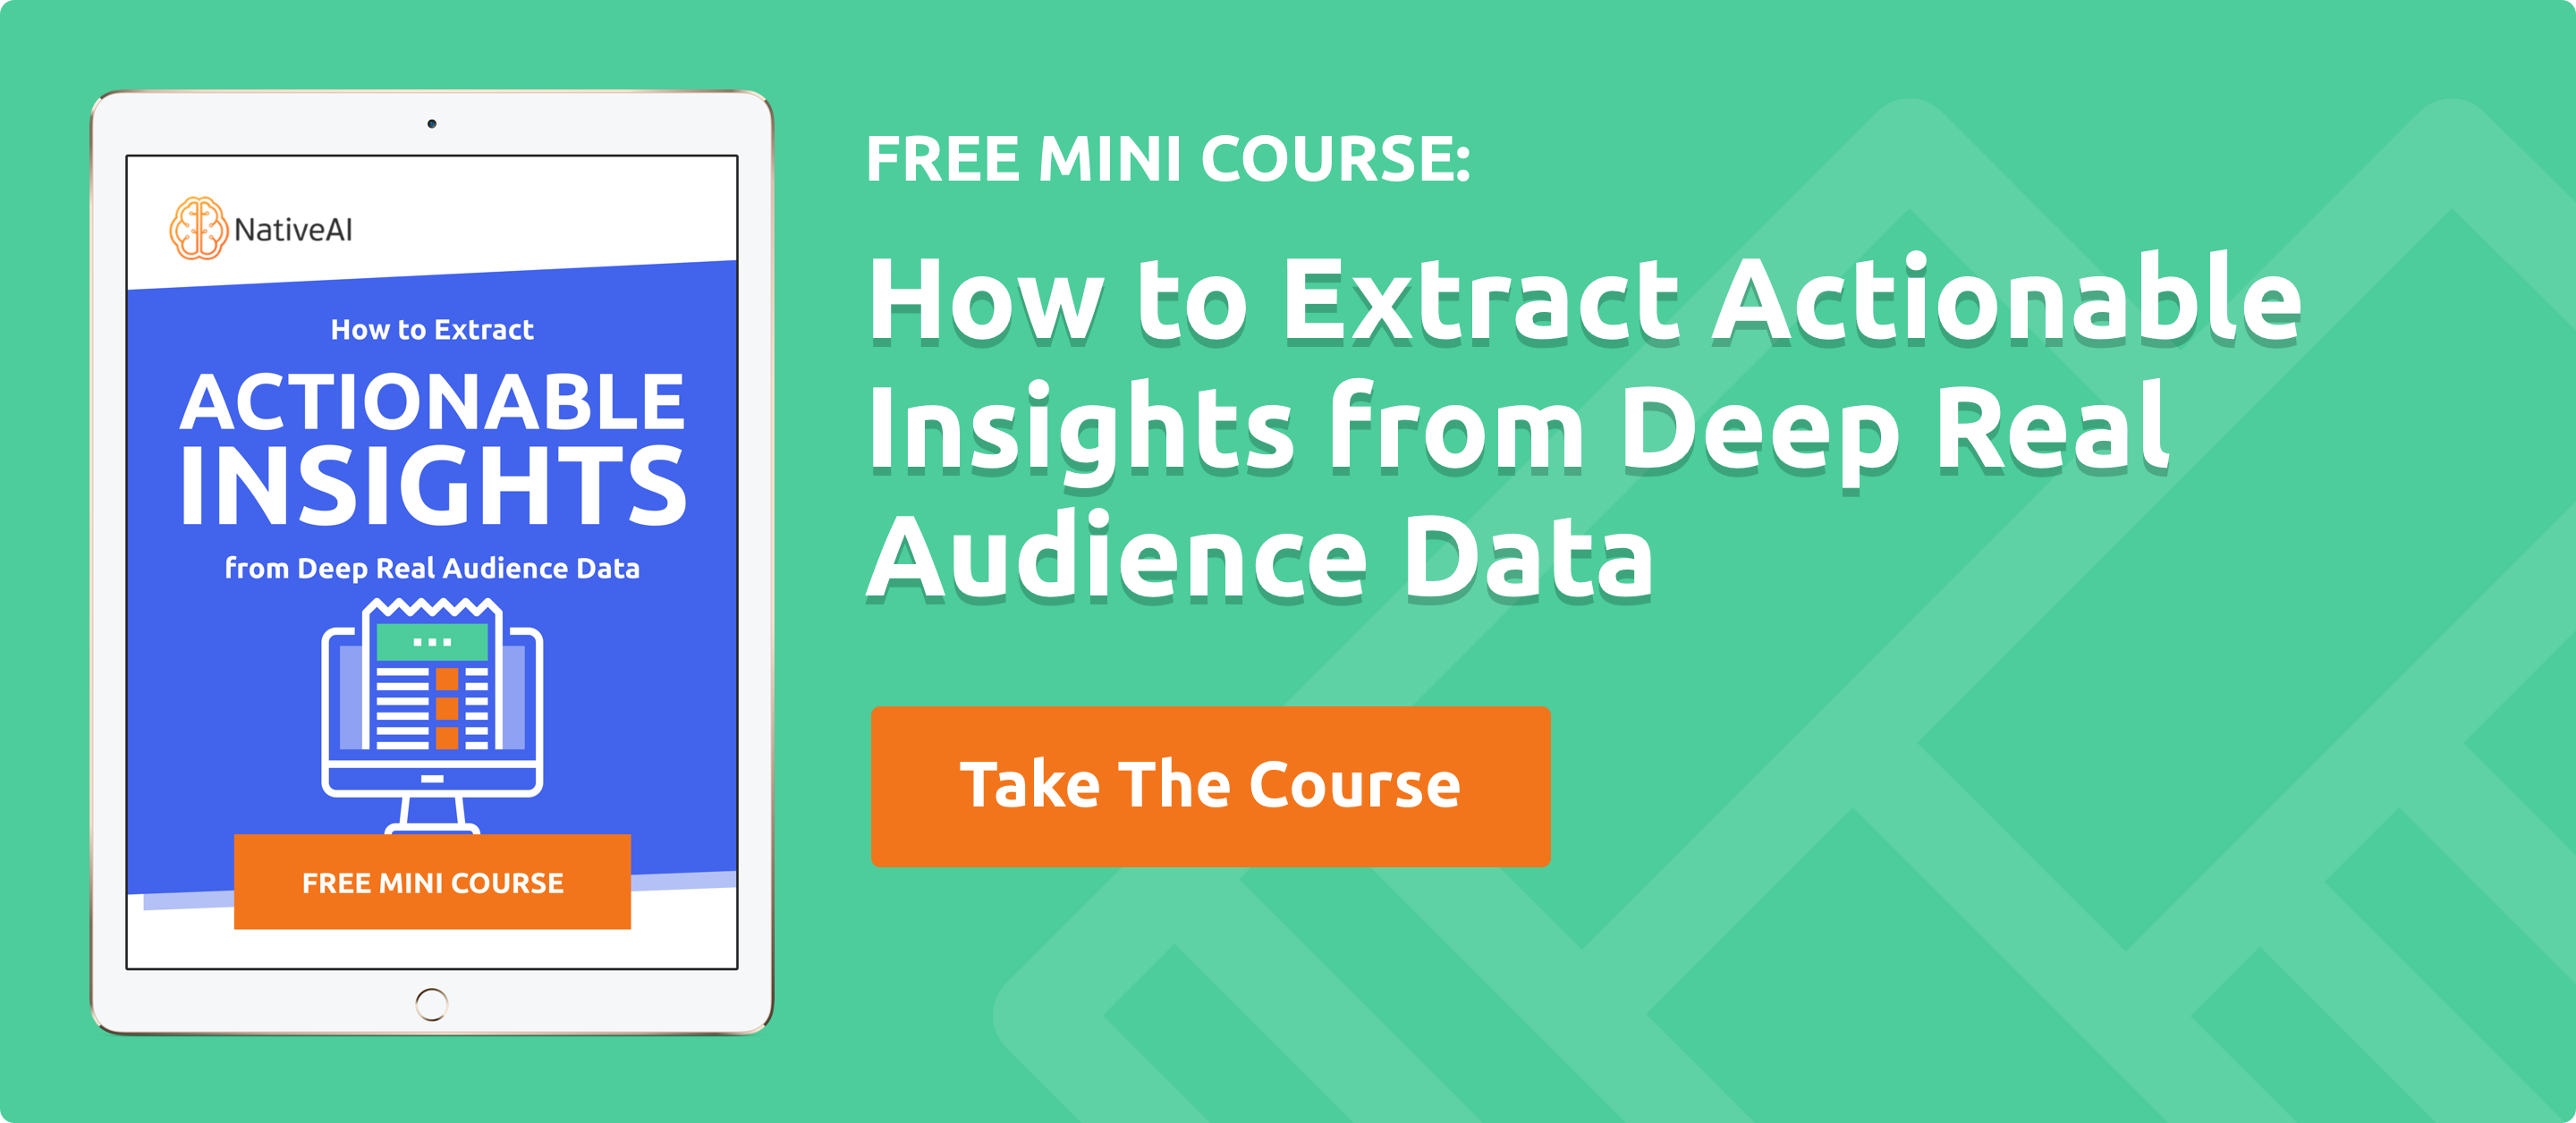 How to Extract Actionable Publishing Insights From Deep Audience Data